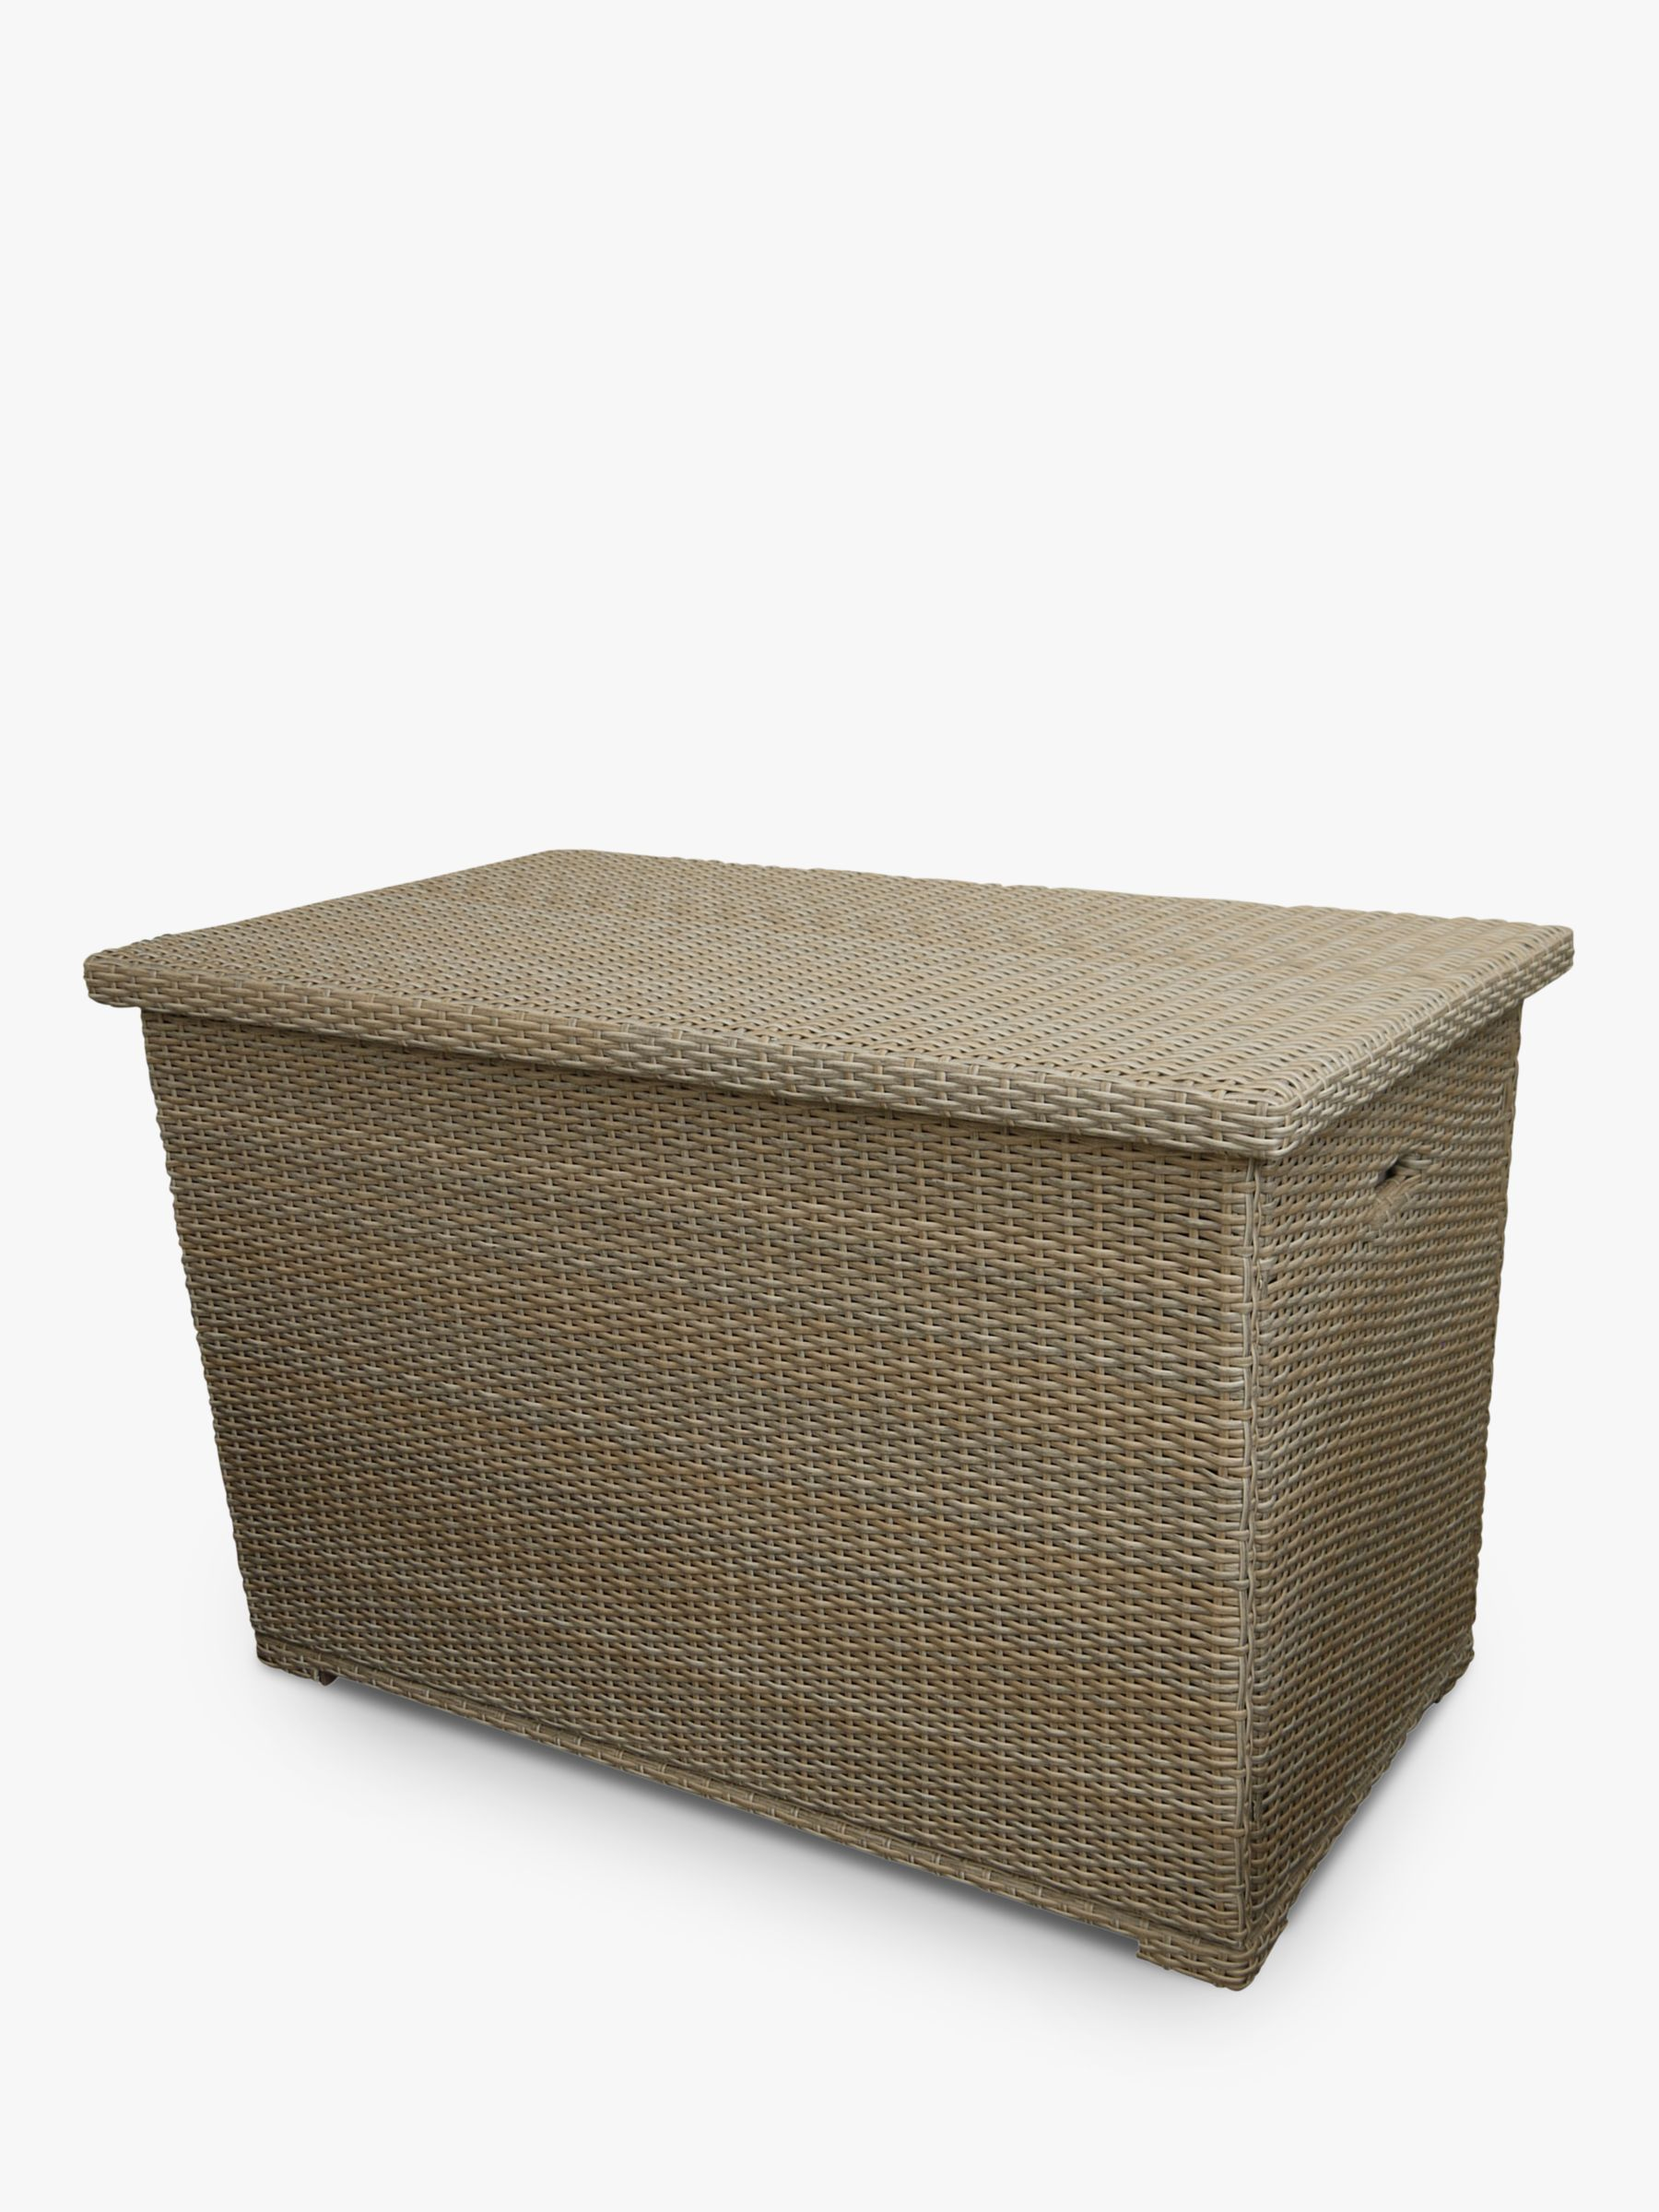 LG Outdoor LG Outdoor Toulon Cushion Storage Box, Brown